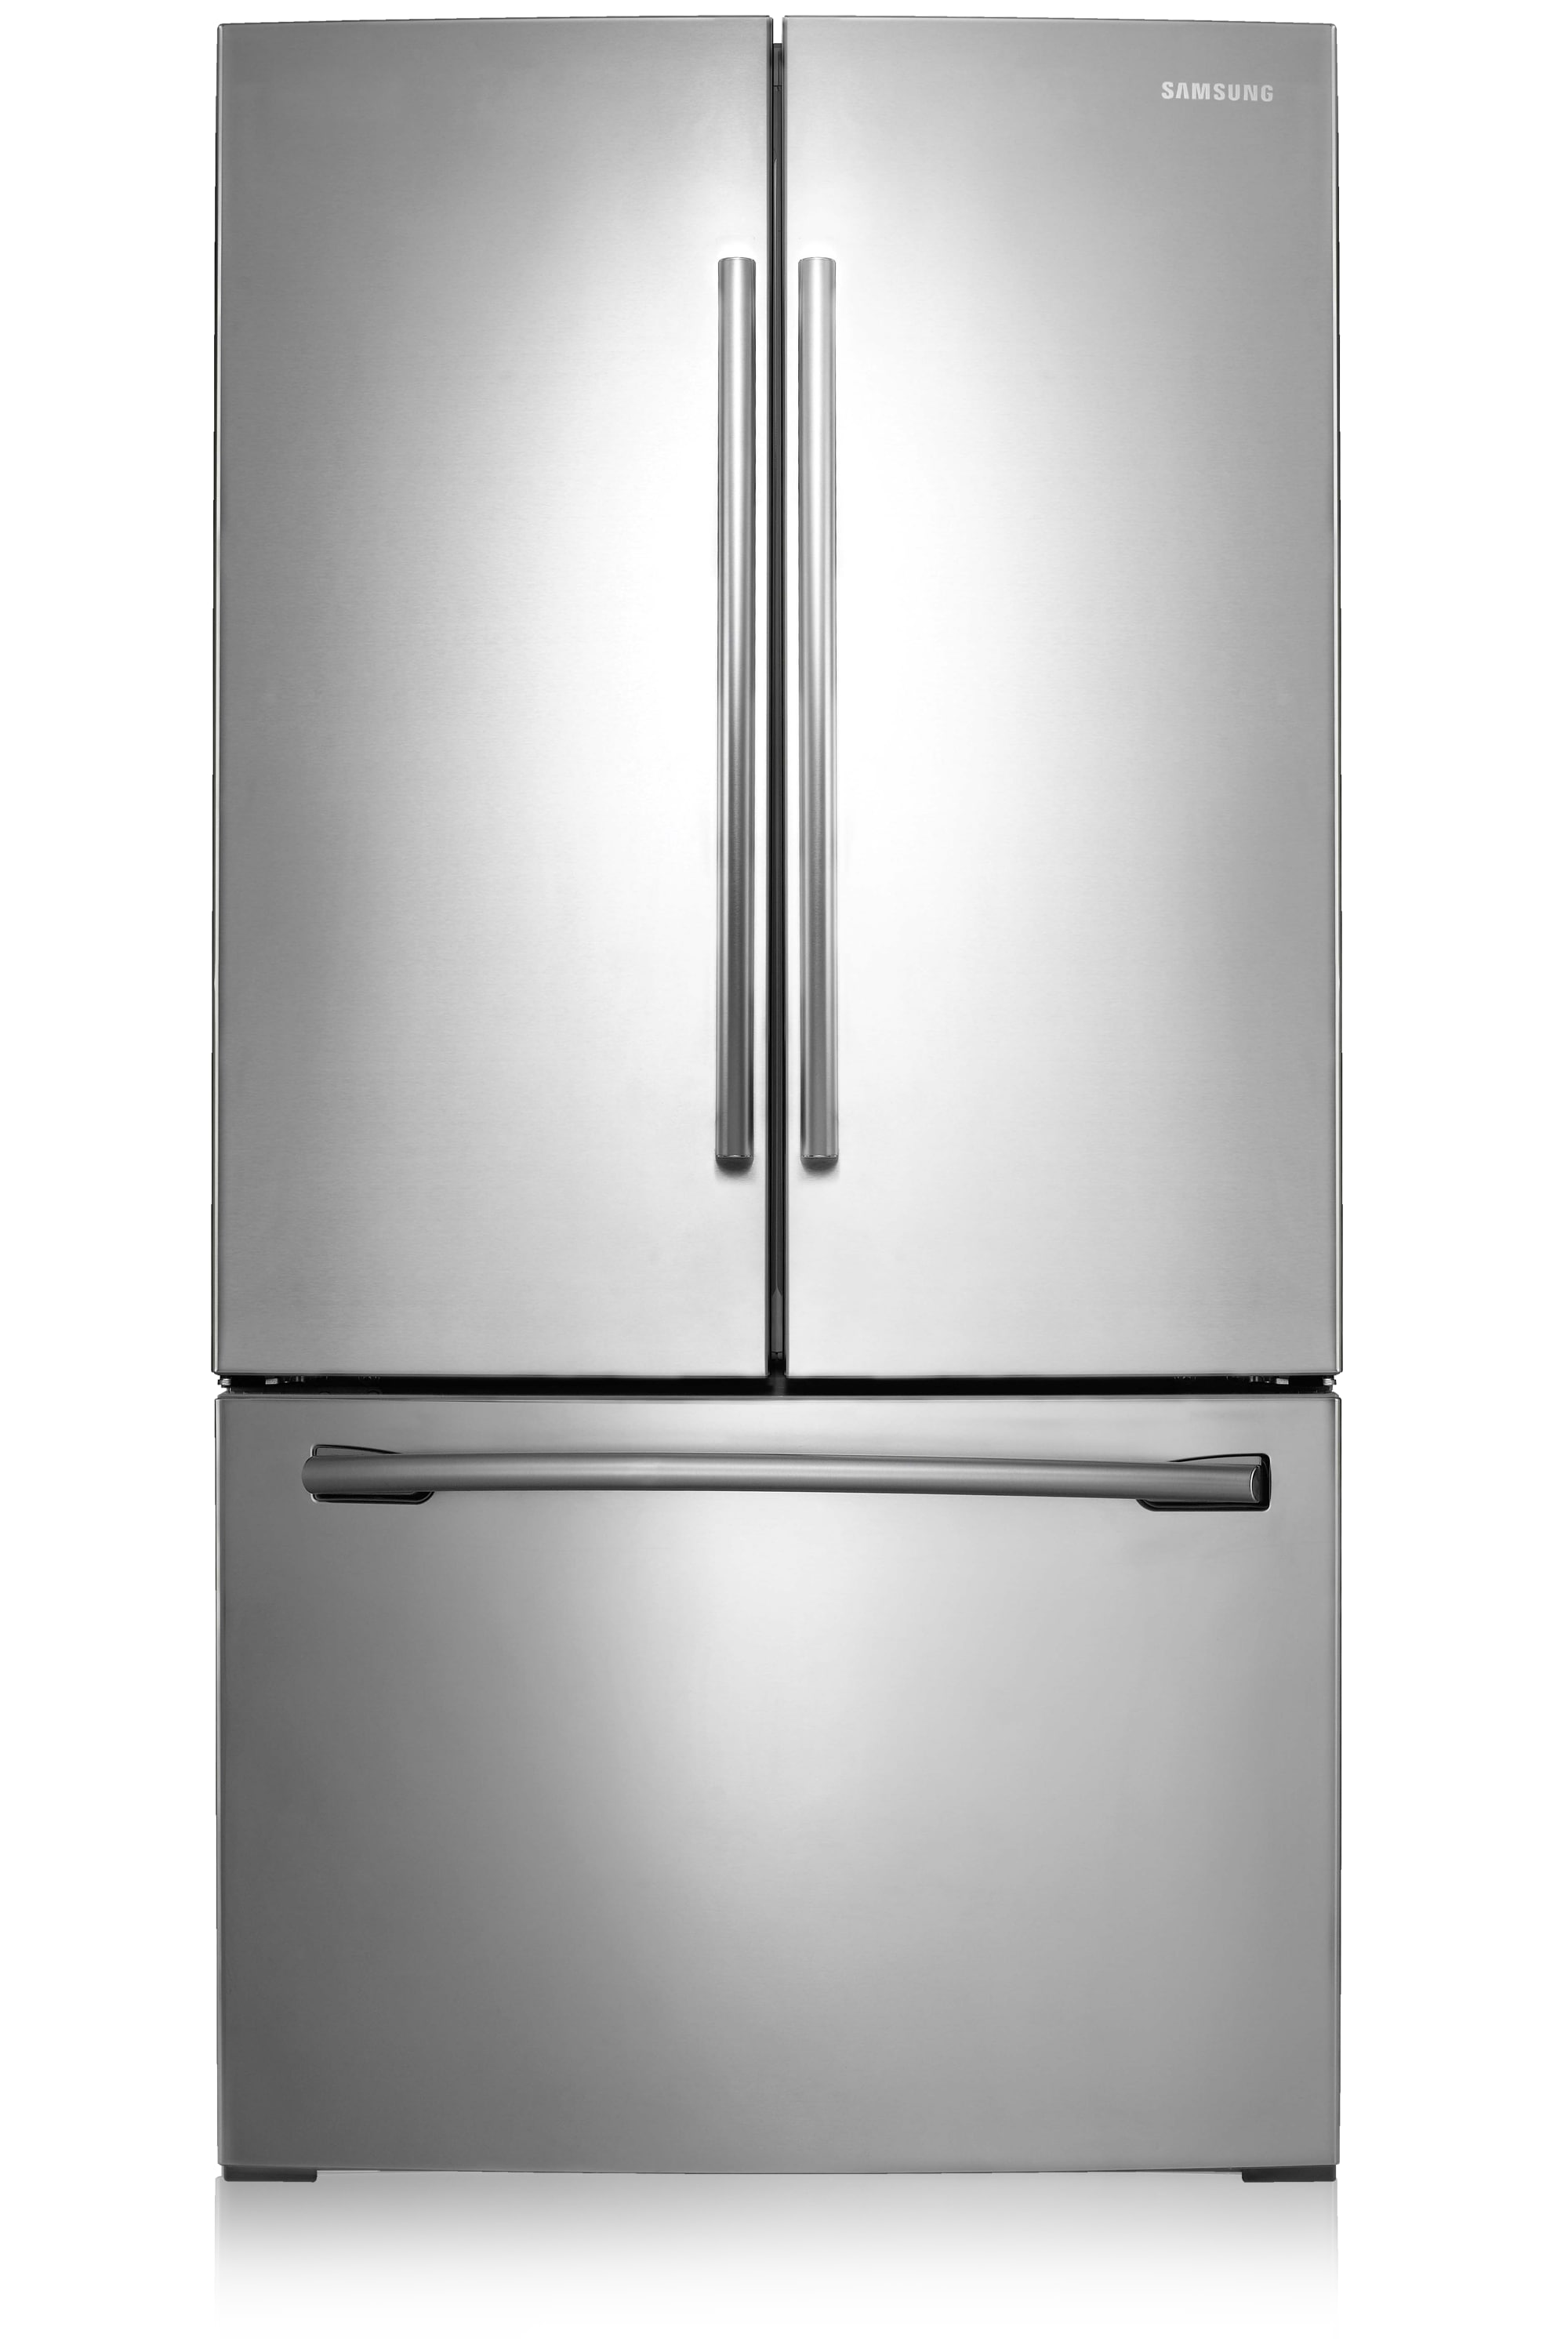 rf261beaesr french door refrigerator with twin cooling plus 25 6 cu ft [ 2000 x 3000 Pixel ]